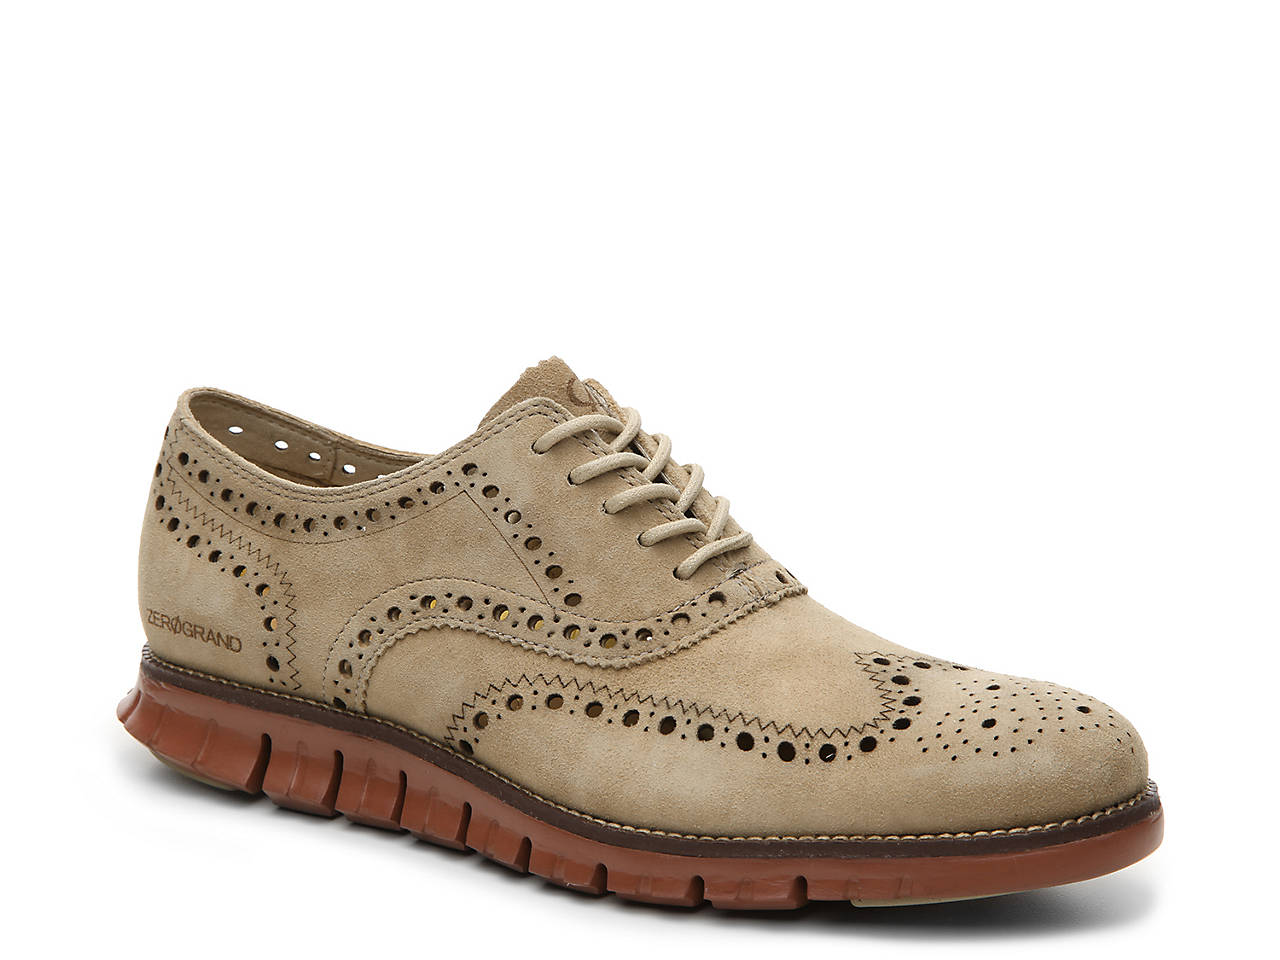 Cole Haan ZeroGrand Wingtip Oxford II Buy Cheap Pay With Paypal Sale New Big Discount For Sale iWBTylxd